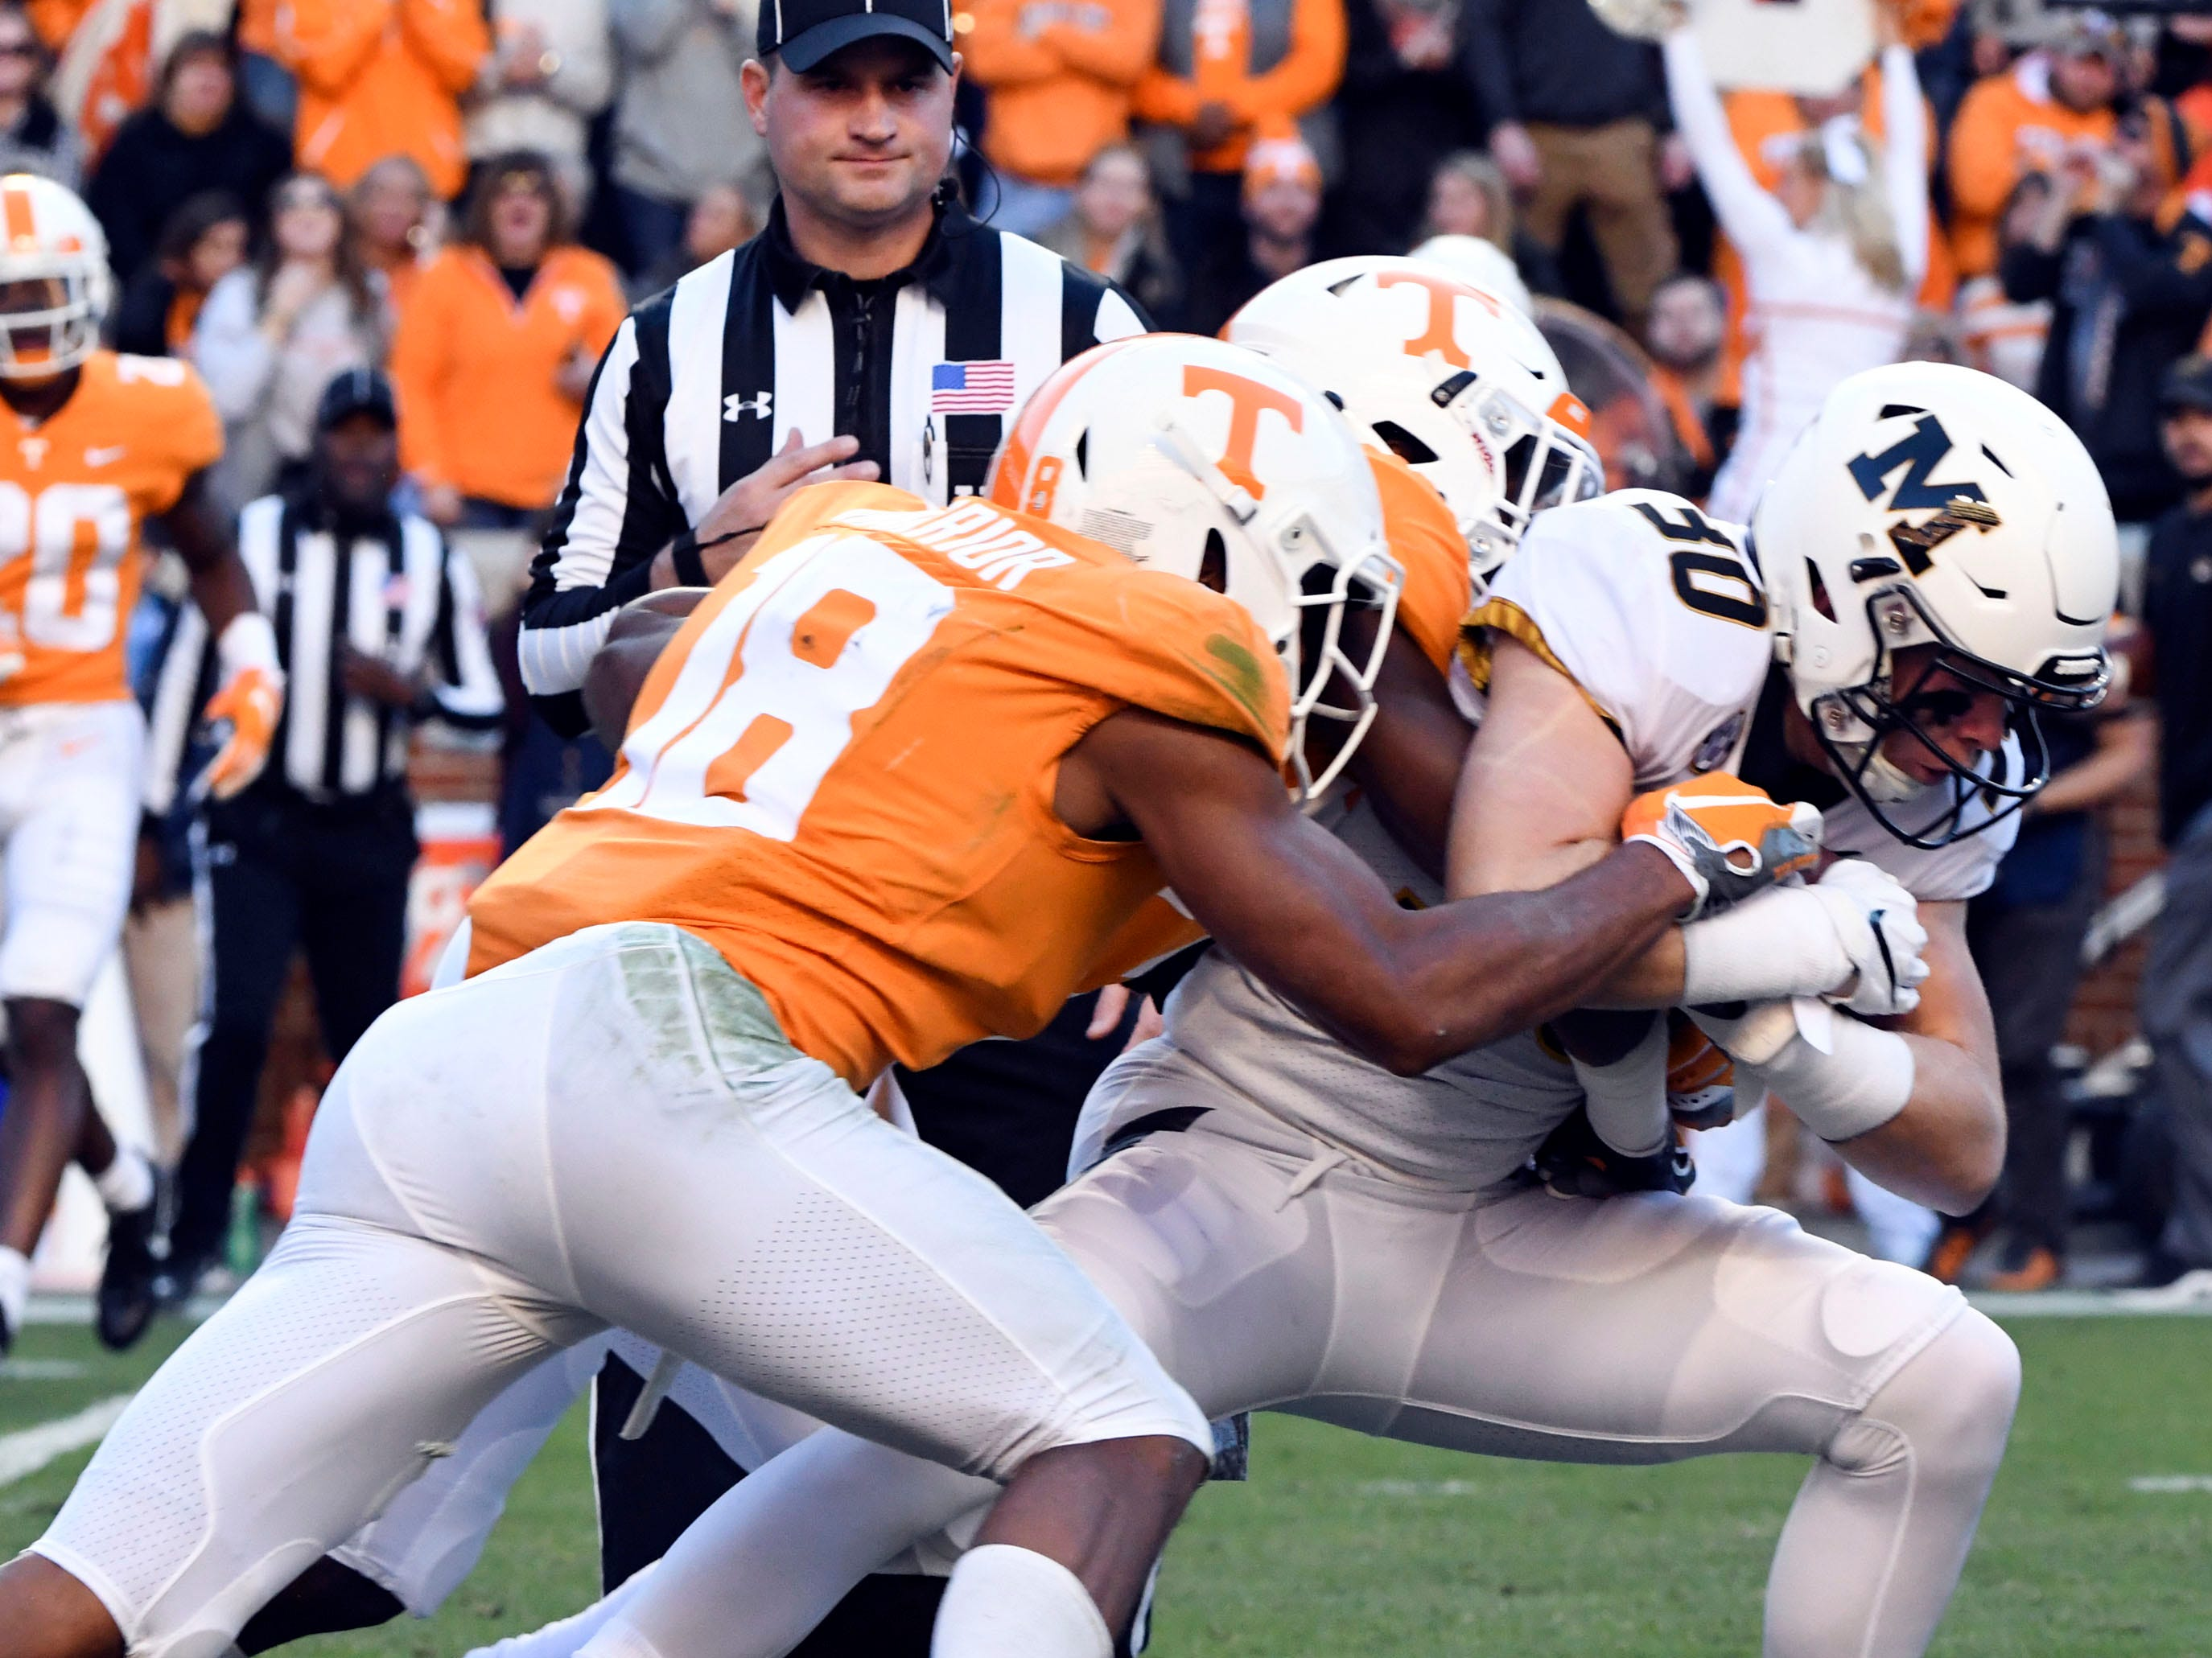 Tennessee defensive back Nigel Warrior (18) and linebacker Austin Smith (30) put a stop to  Missouri wide receiver Barrett Banister (30) during the Tennessee and Missouri football game on Saturday, November 17, 2018.